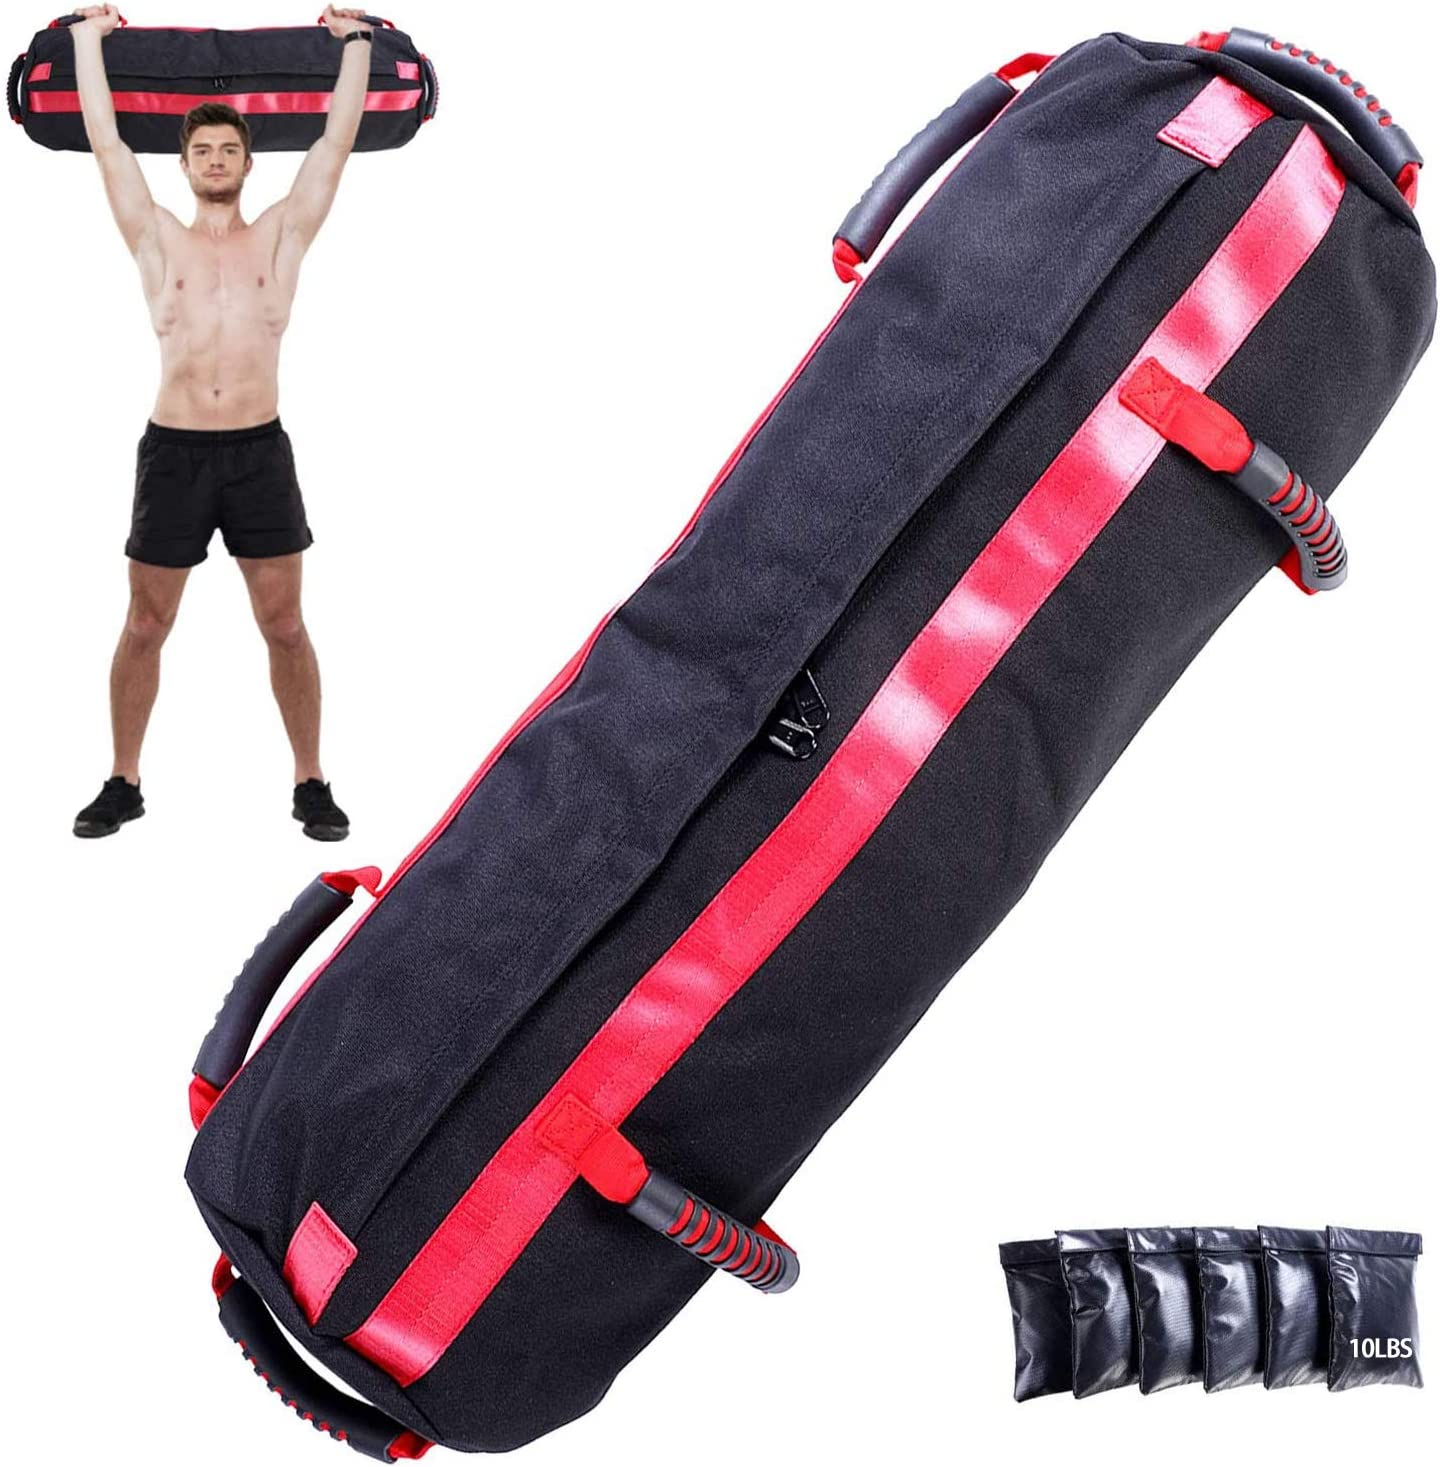 Workout Sandbag, Adjustable Fitness Sandbag with 6 Filler Bags 10 to 60 Lbs, 6 Ergonomic Rubber Handles, Exercise Sandbags Perfect for a Home Gym, Crossfit, or a Personal Trainer.